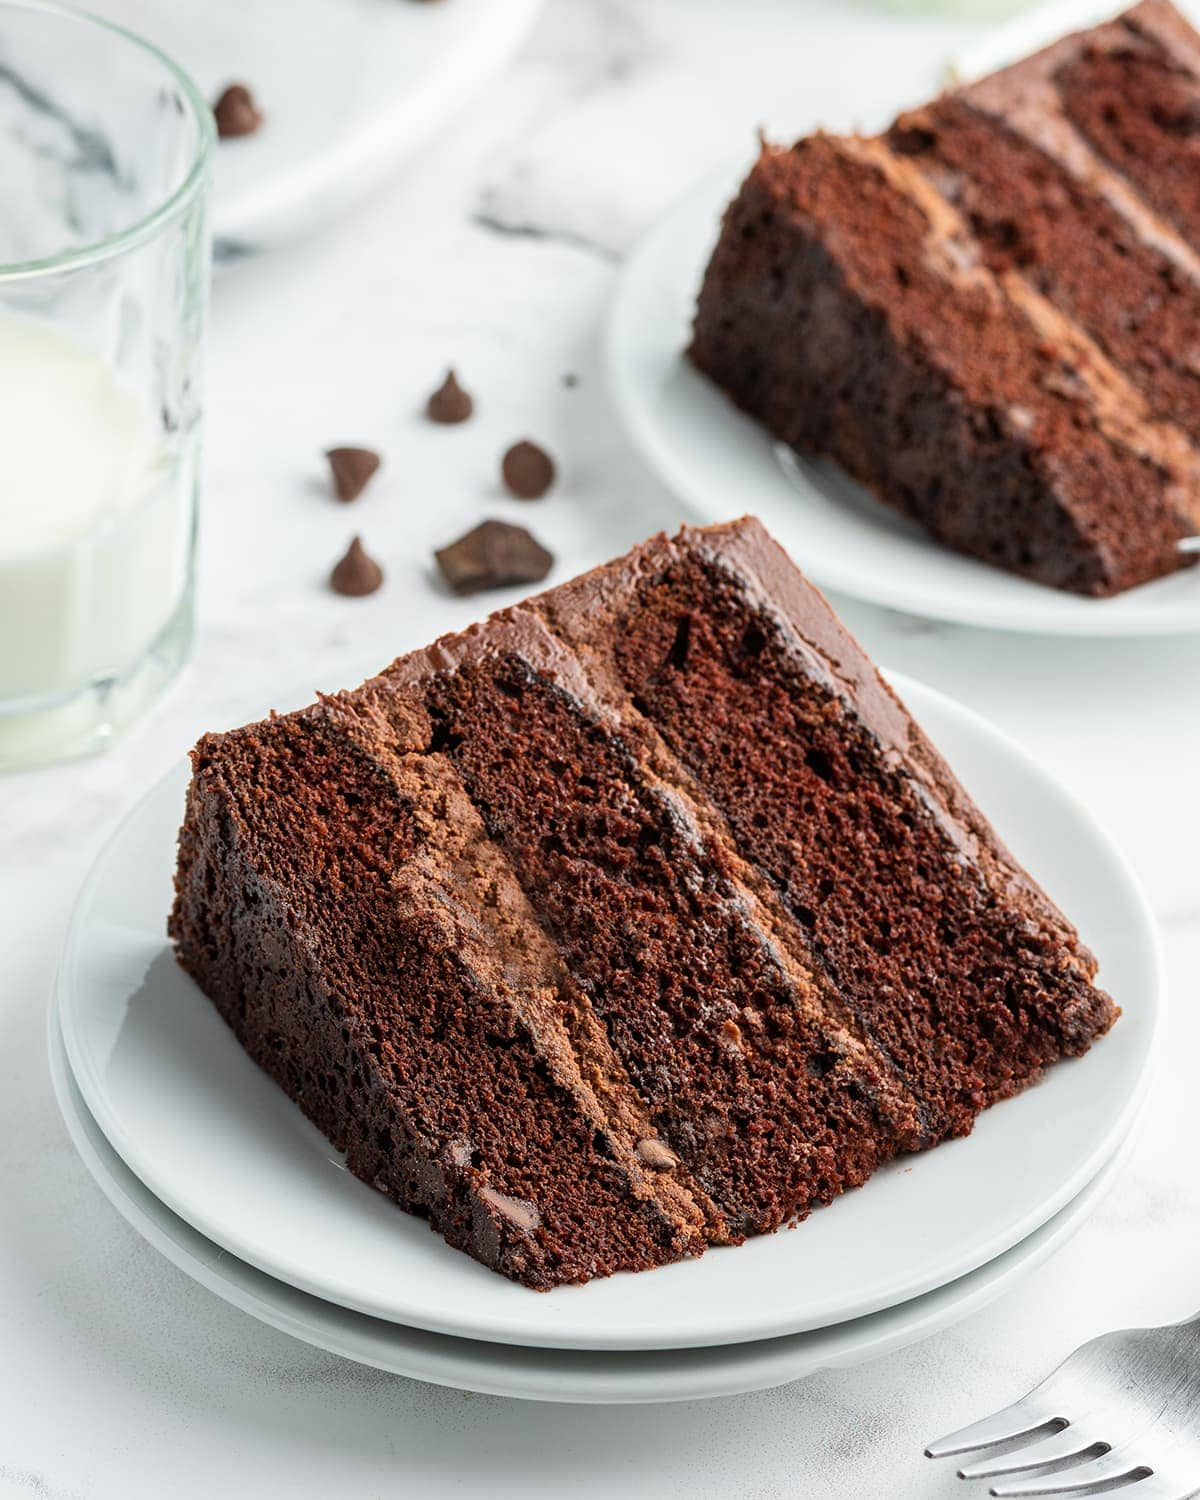 A slice of chocolate cake with three layers and chocolate frosting on a white plate. There is another slice in the back.